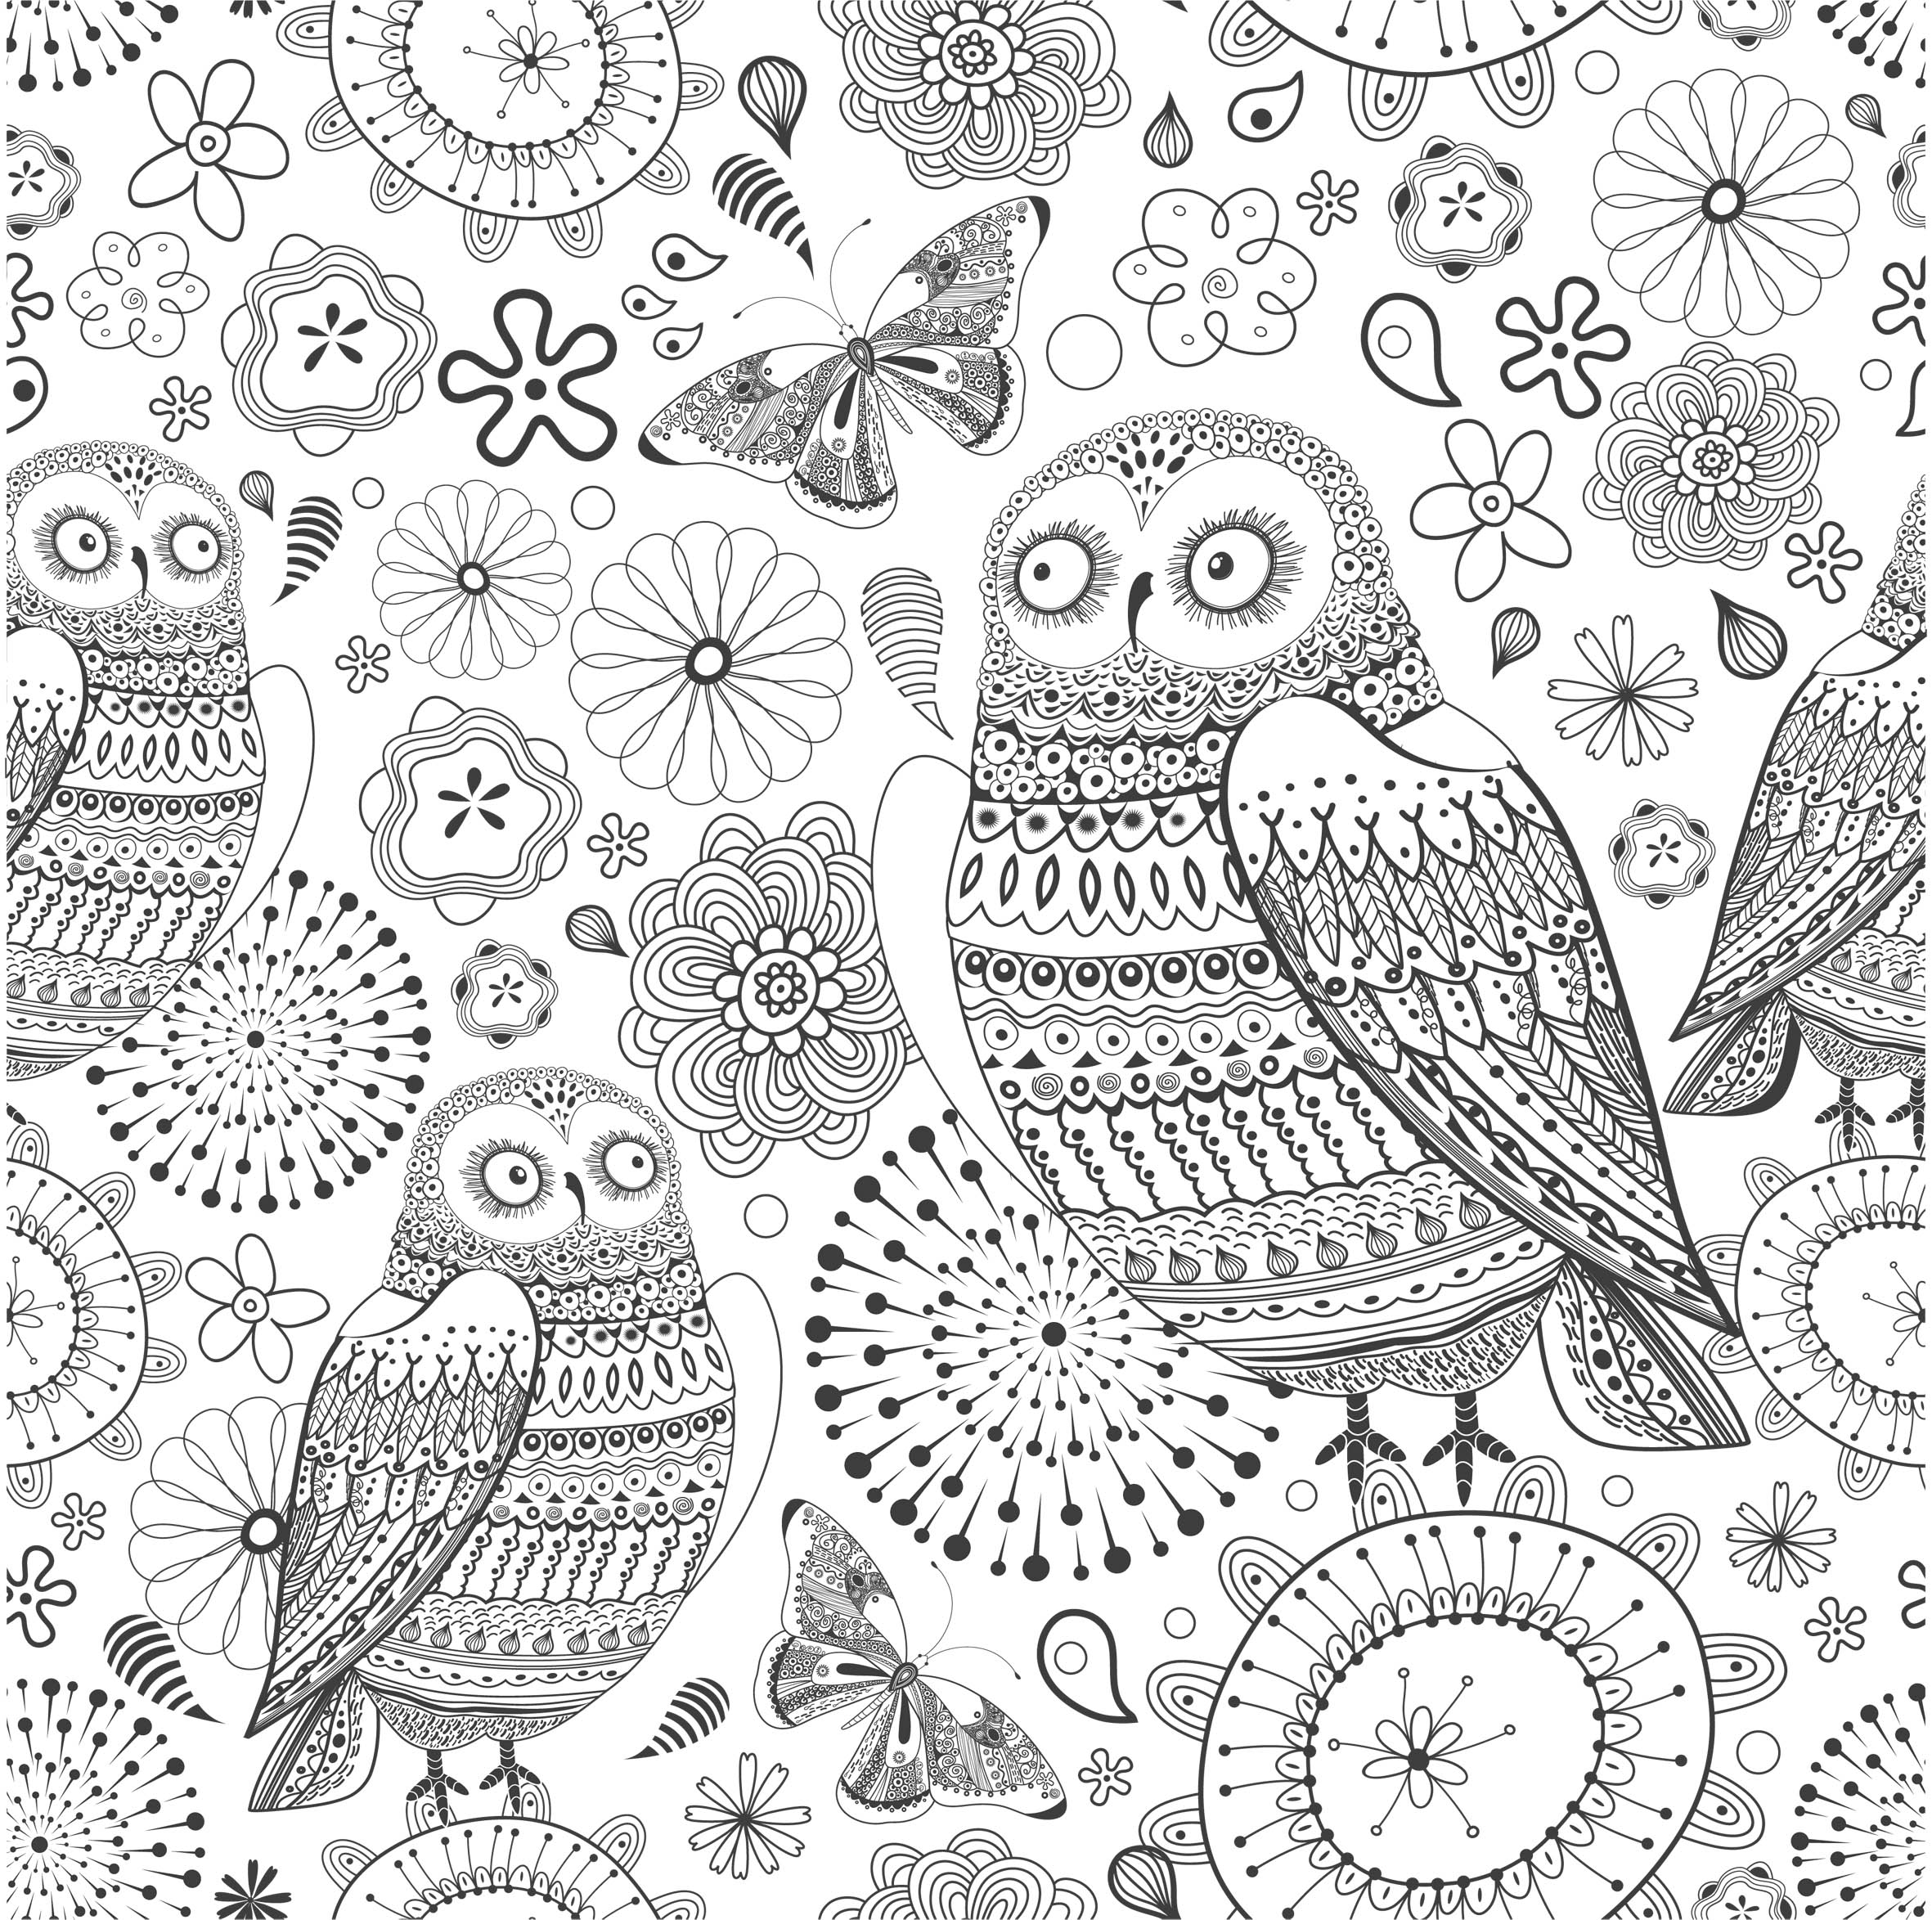 Art Therapy #23099 (Relaxation) - Printable coloring pages